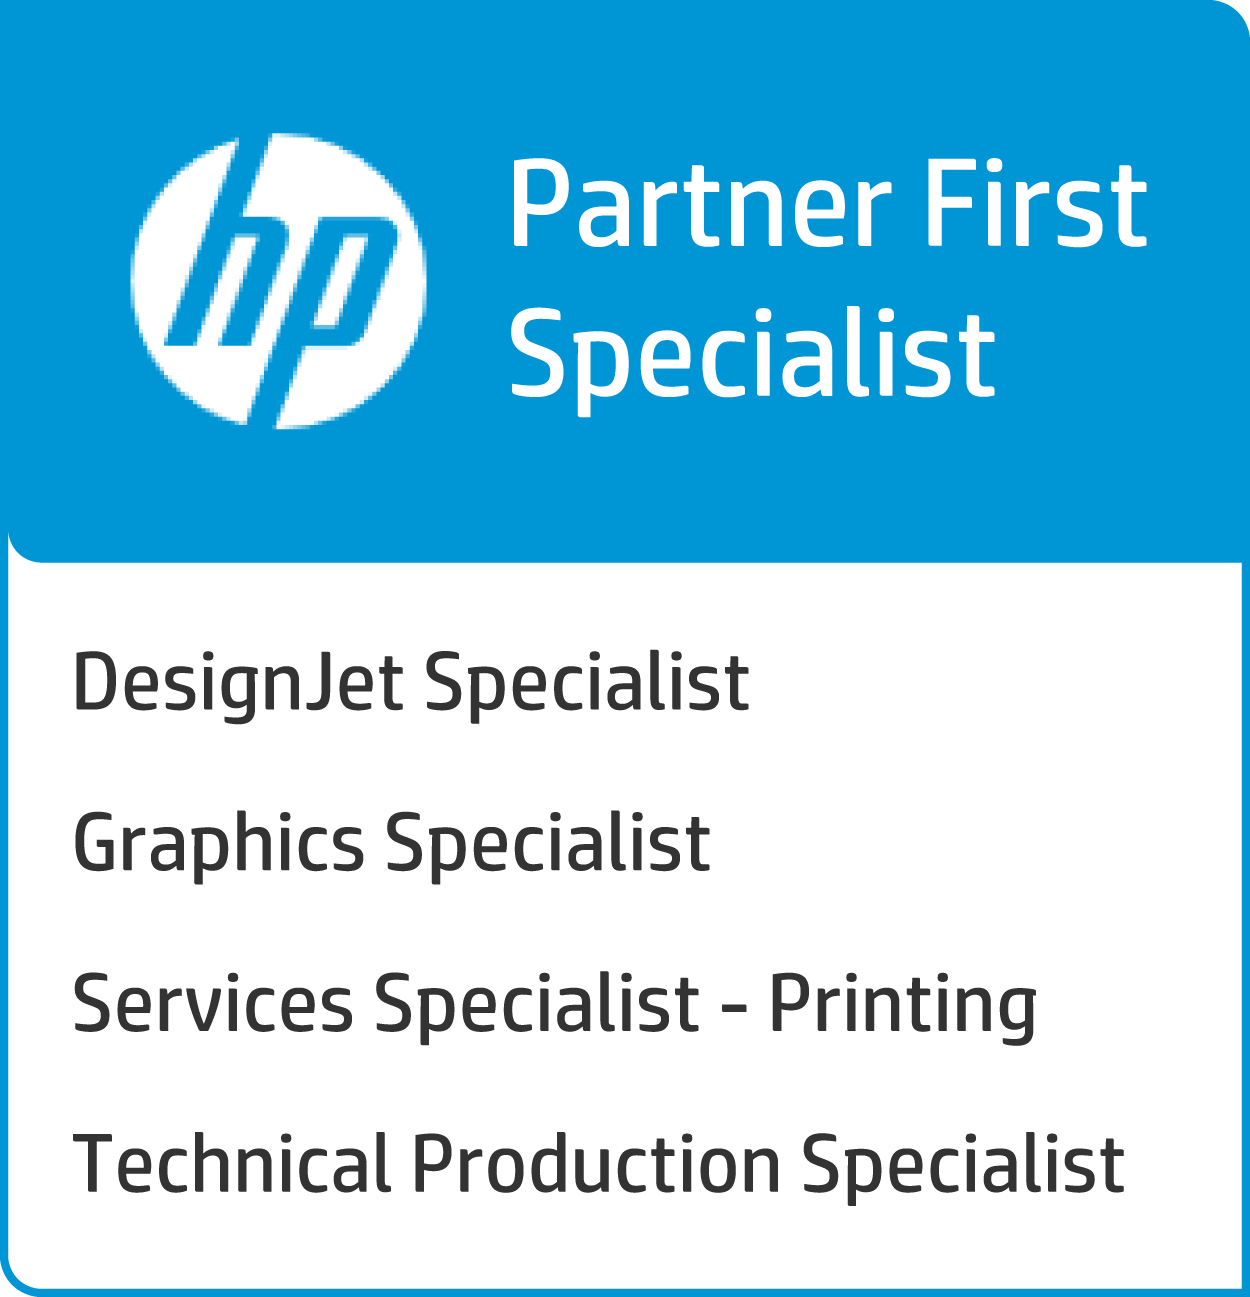 HP Partner First Specialist